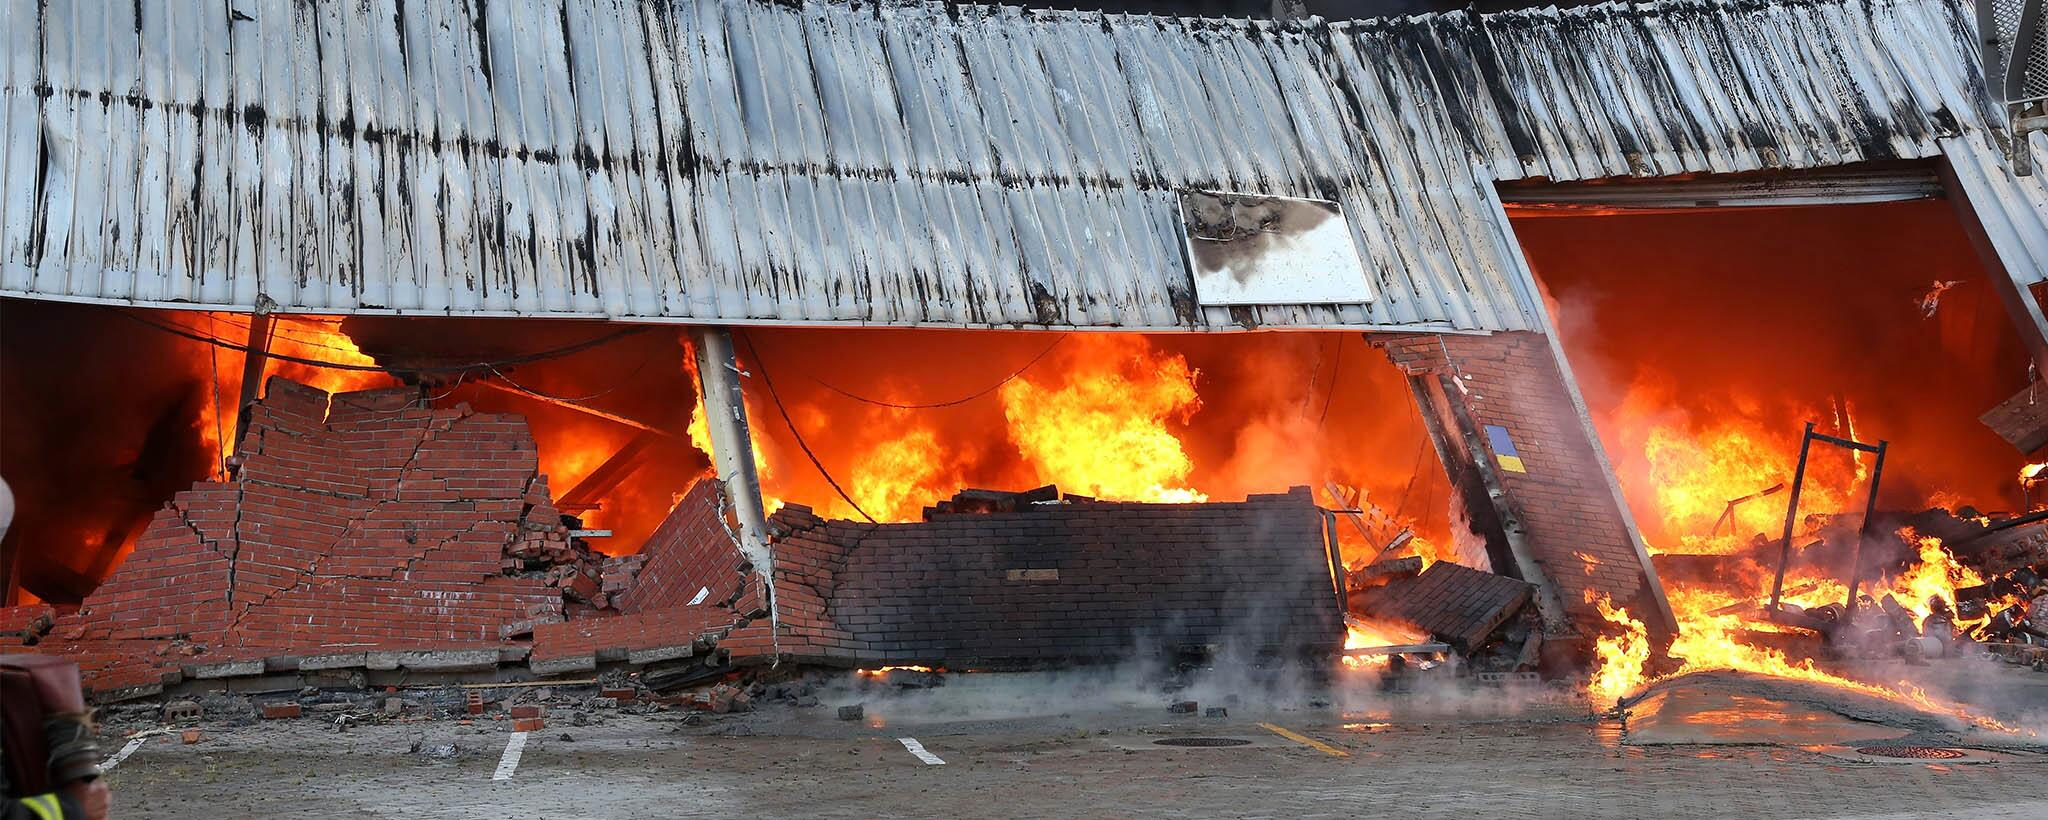 A fire inside of a building has caused the brick exterior and the ceiling to collapse